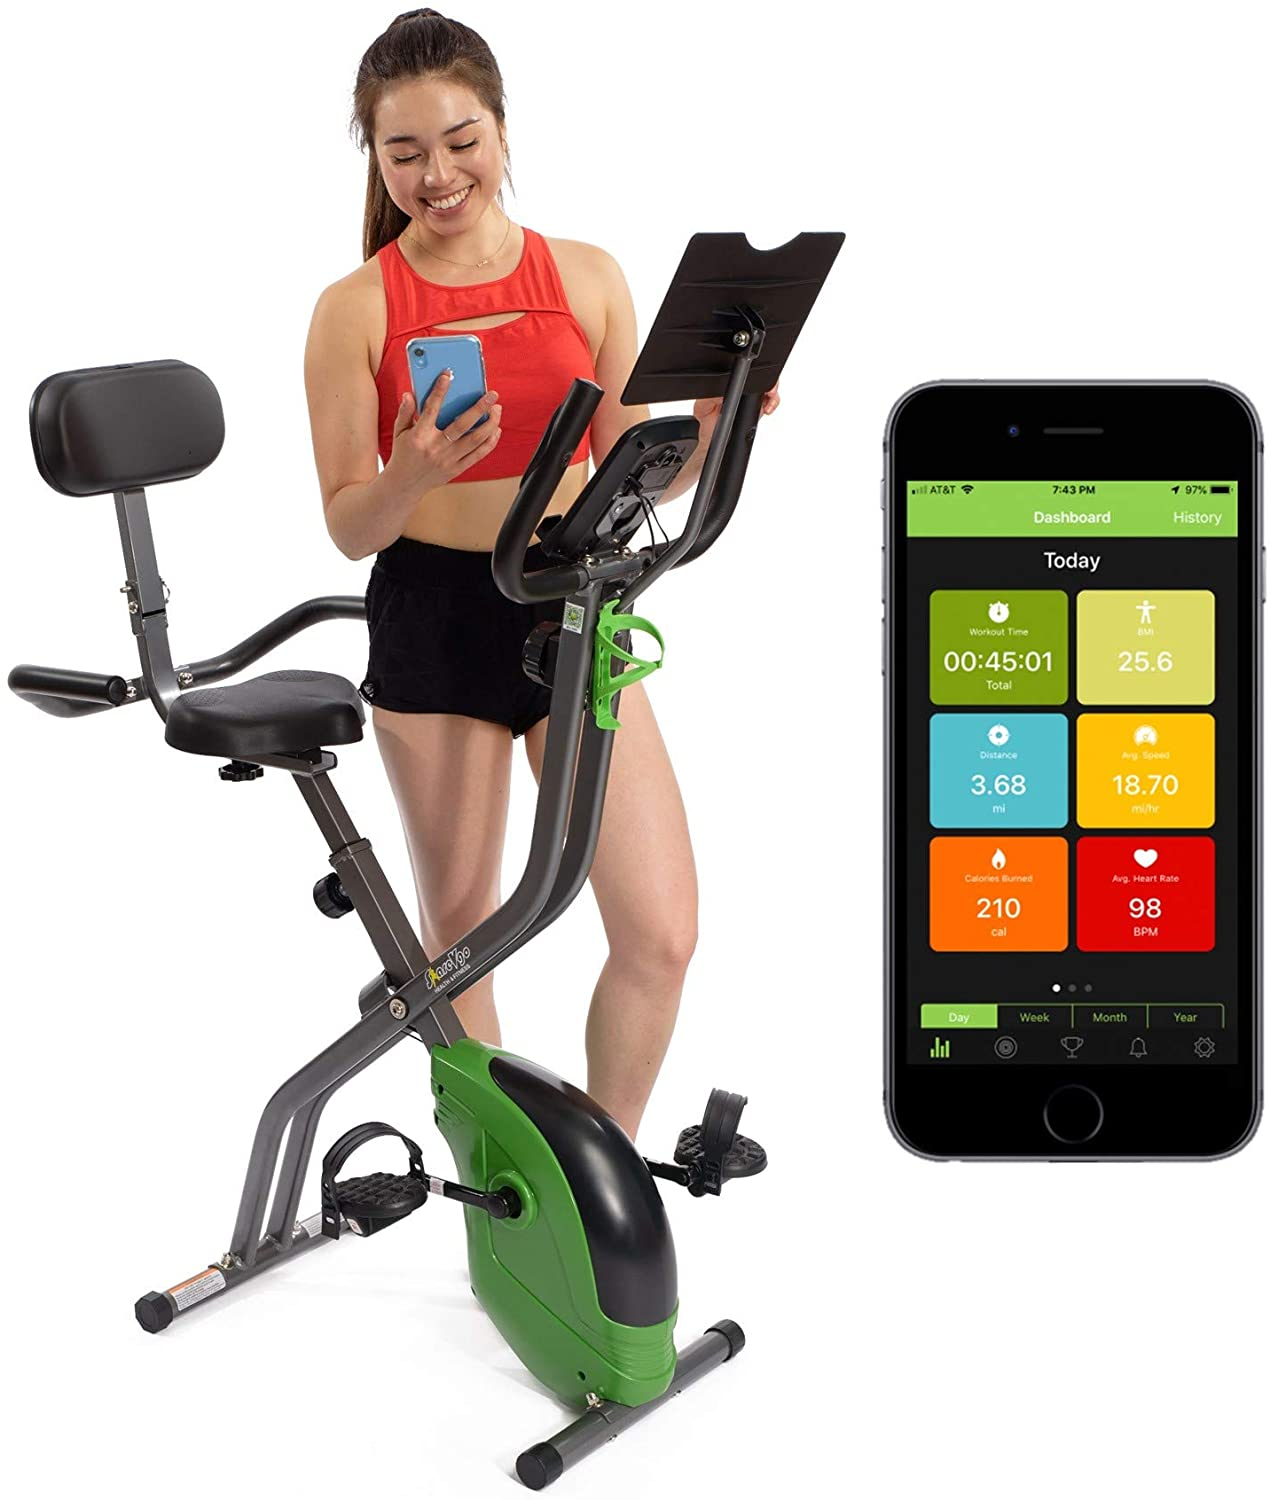 ShareVgo Bluetooth Smart Folding Exercise Bike